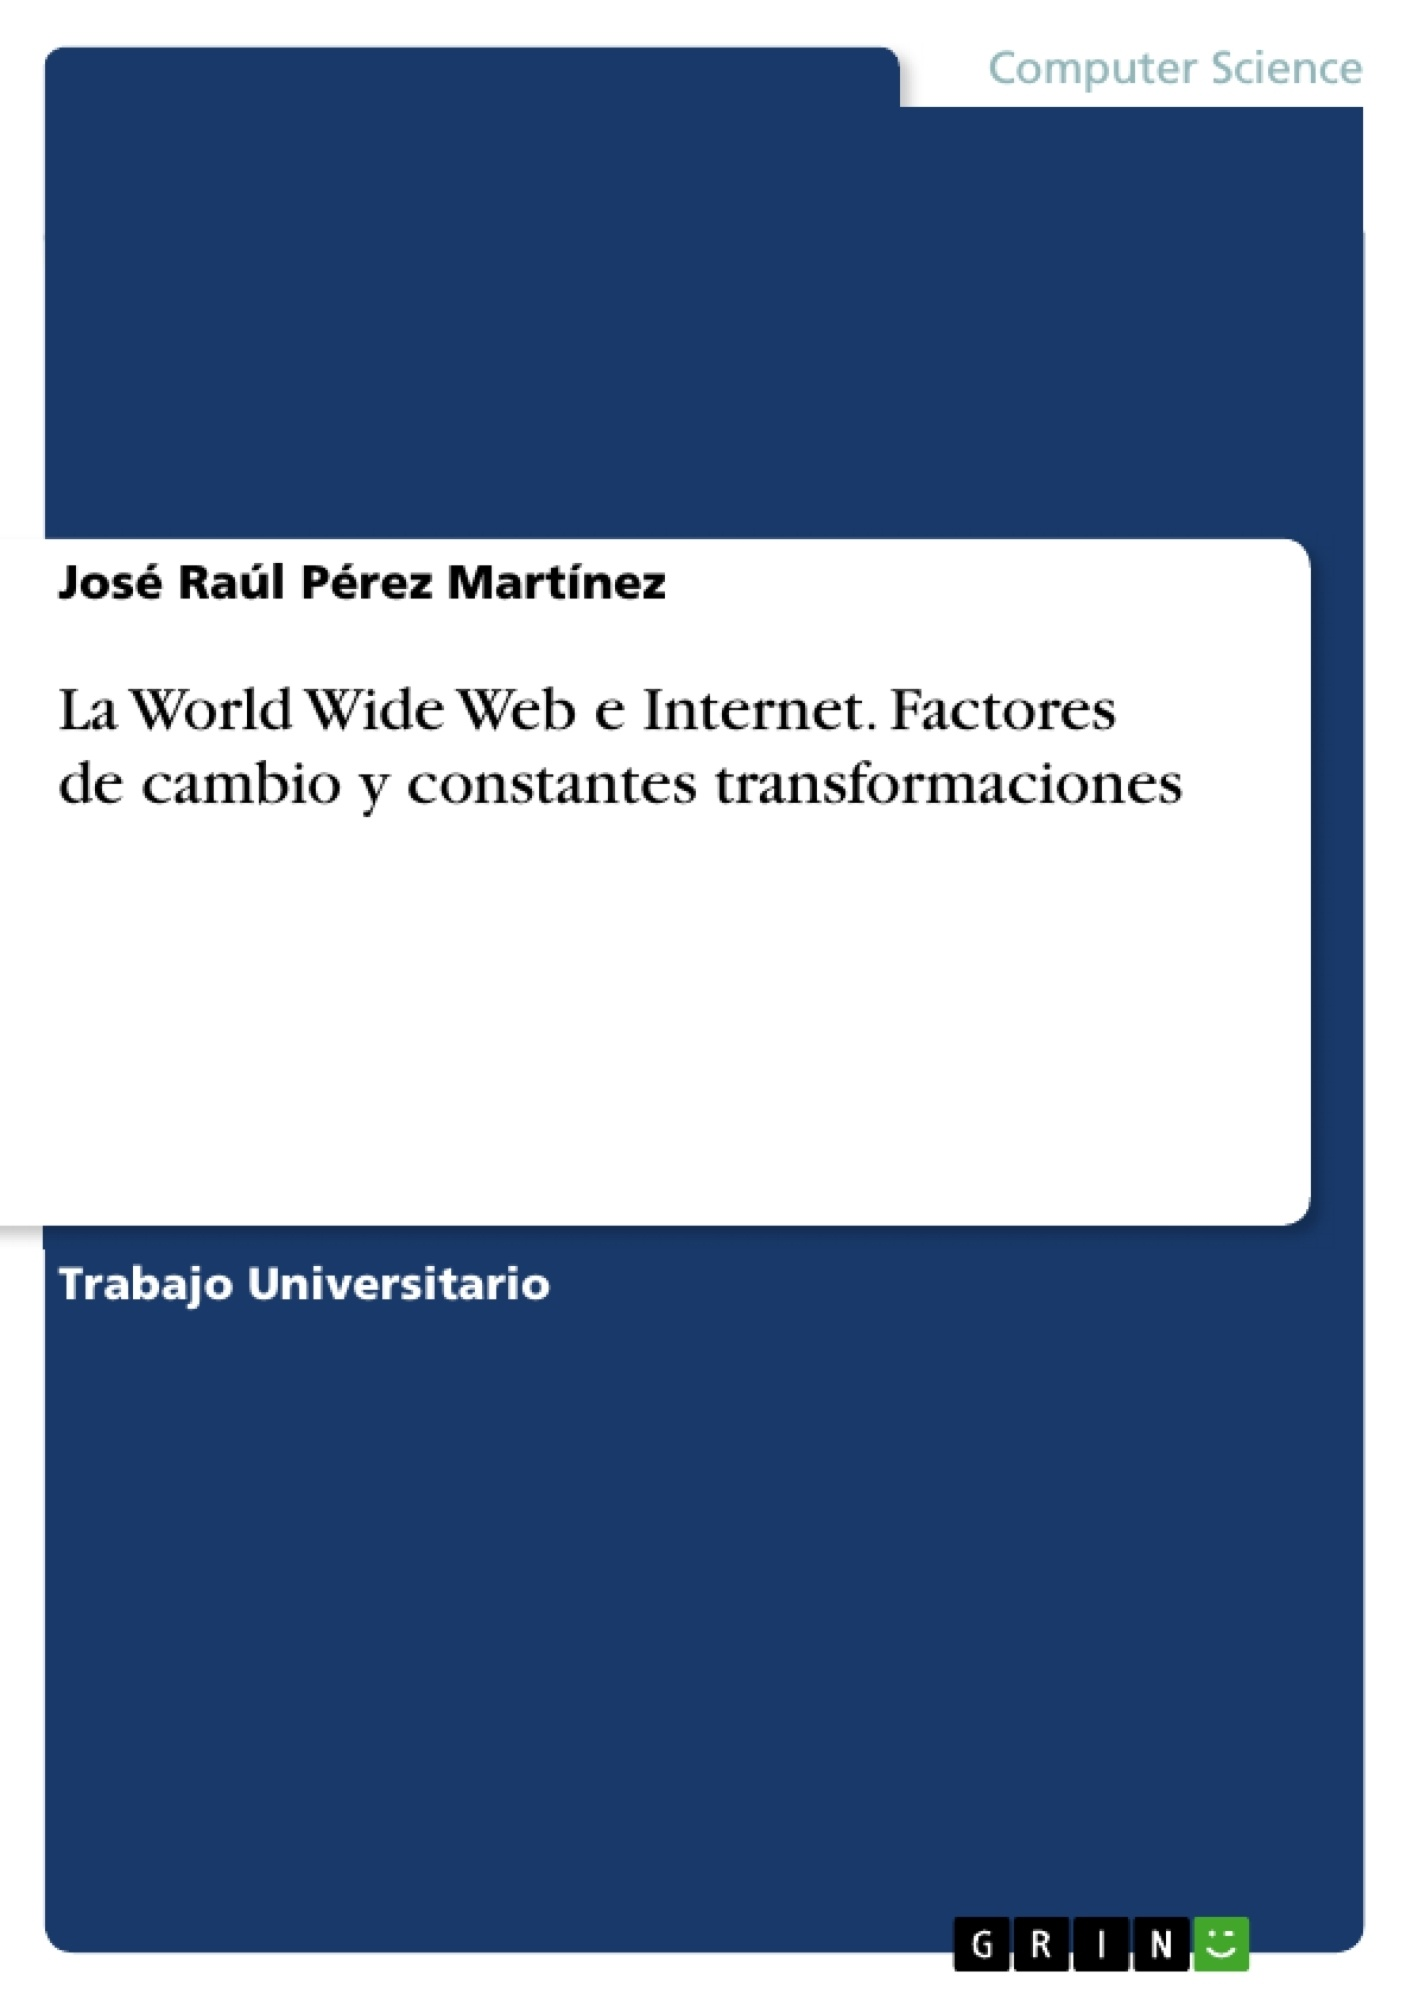 Título: La World Wide Web e Internet. Factores de cambio y constantes transformaciones